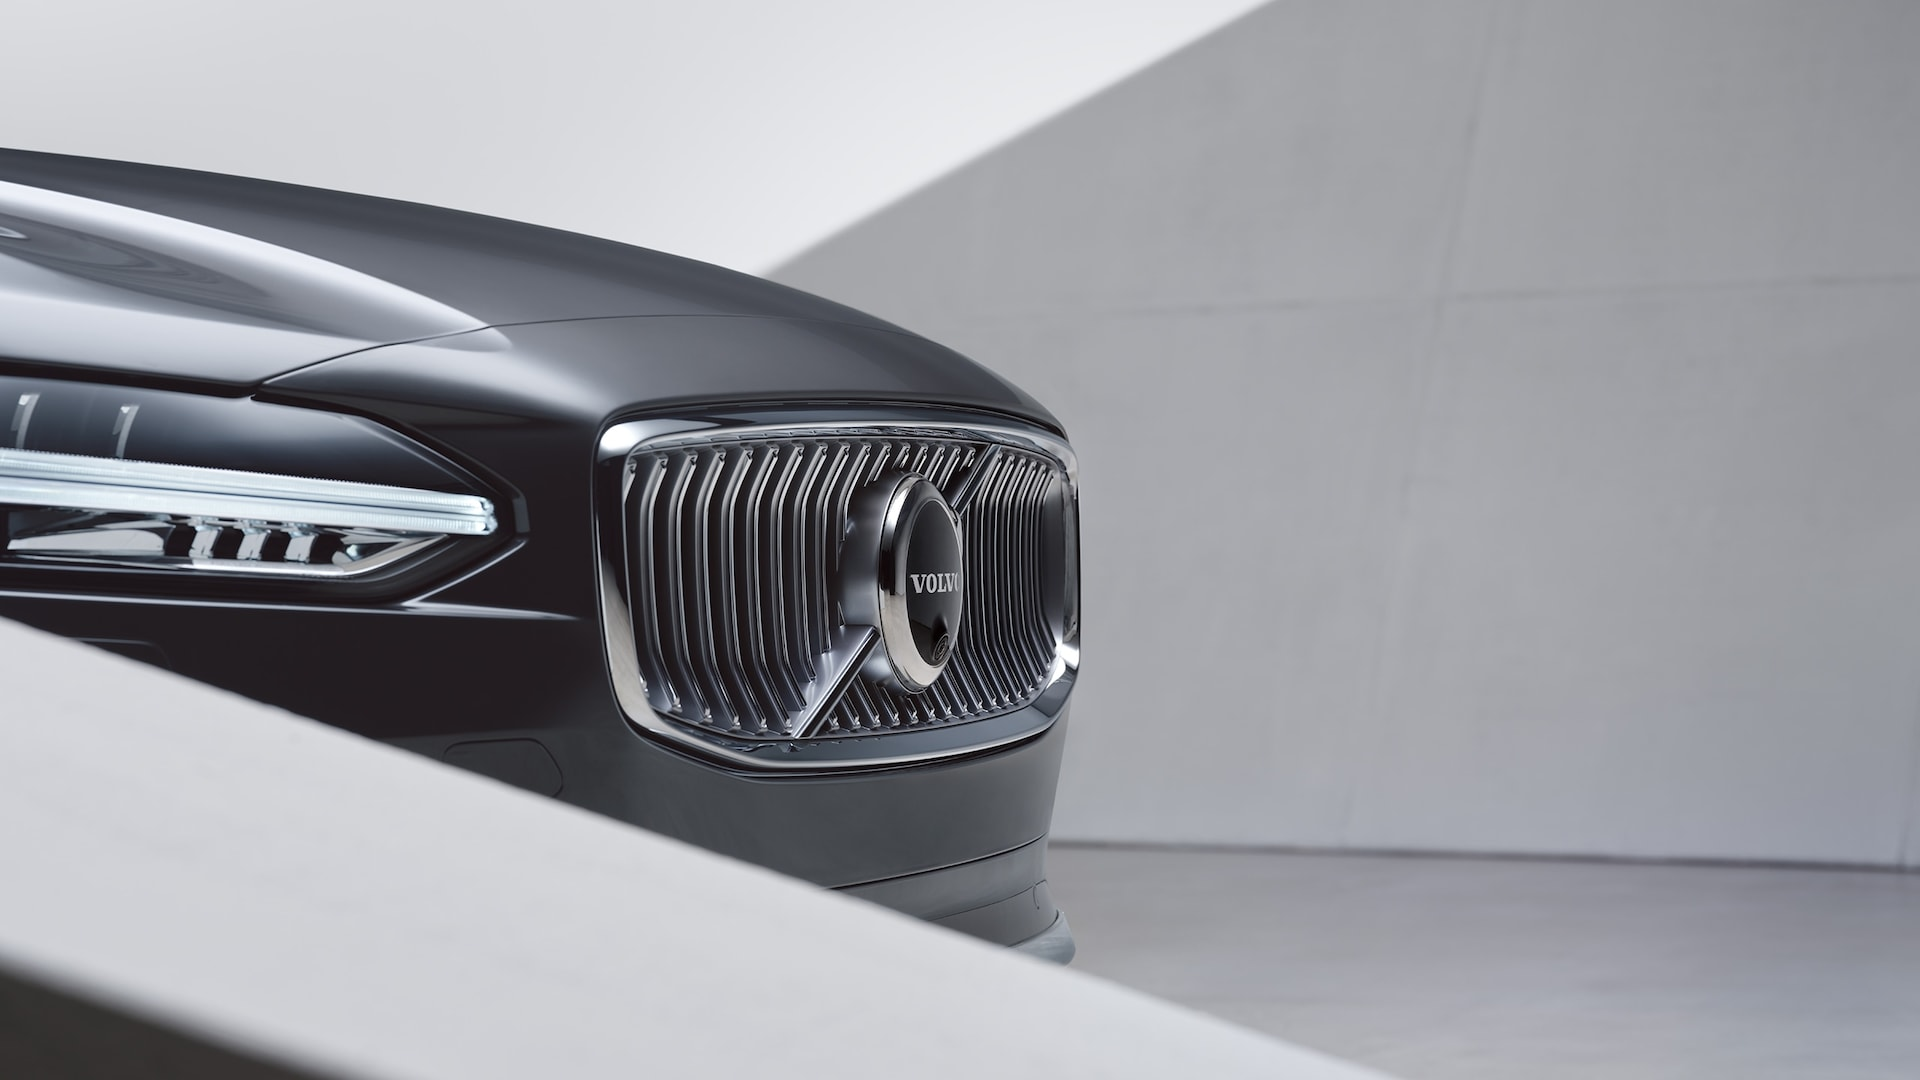 The front exterior of a Volvo S90